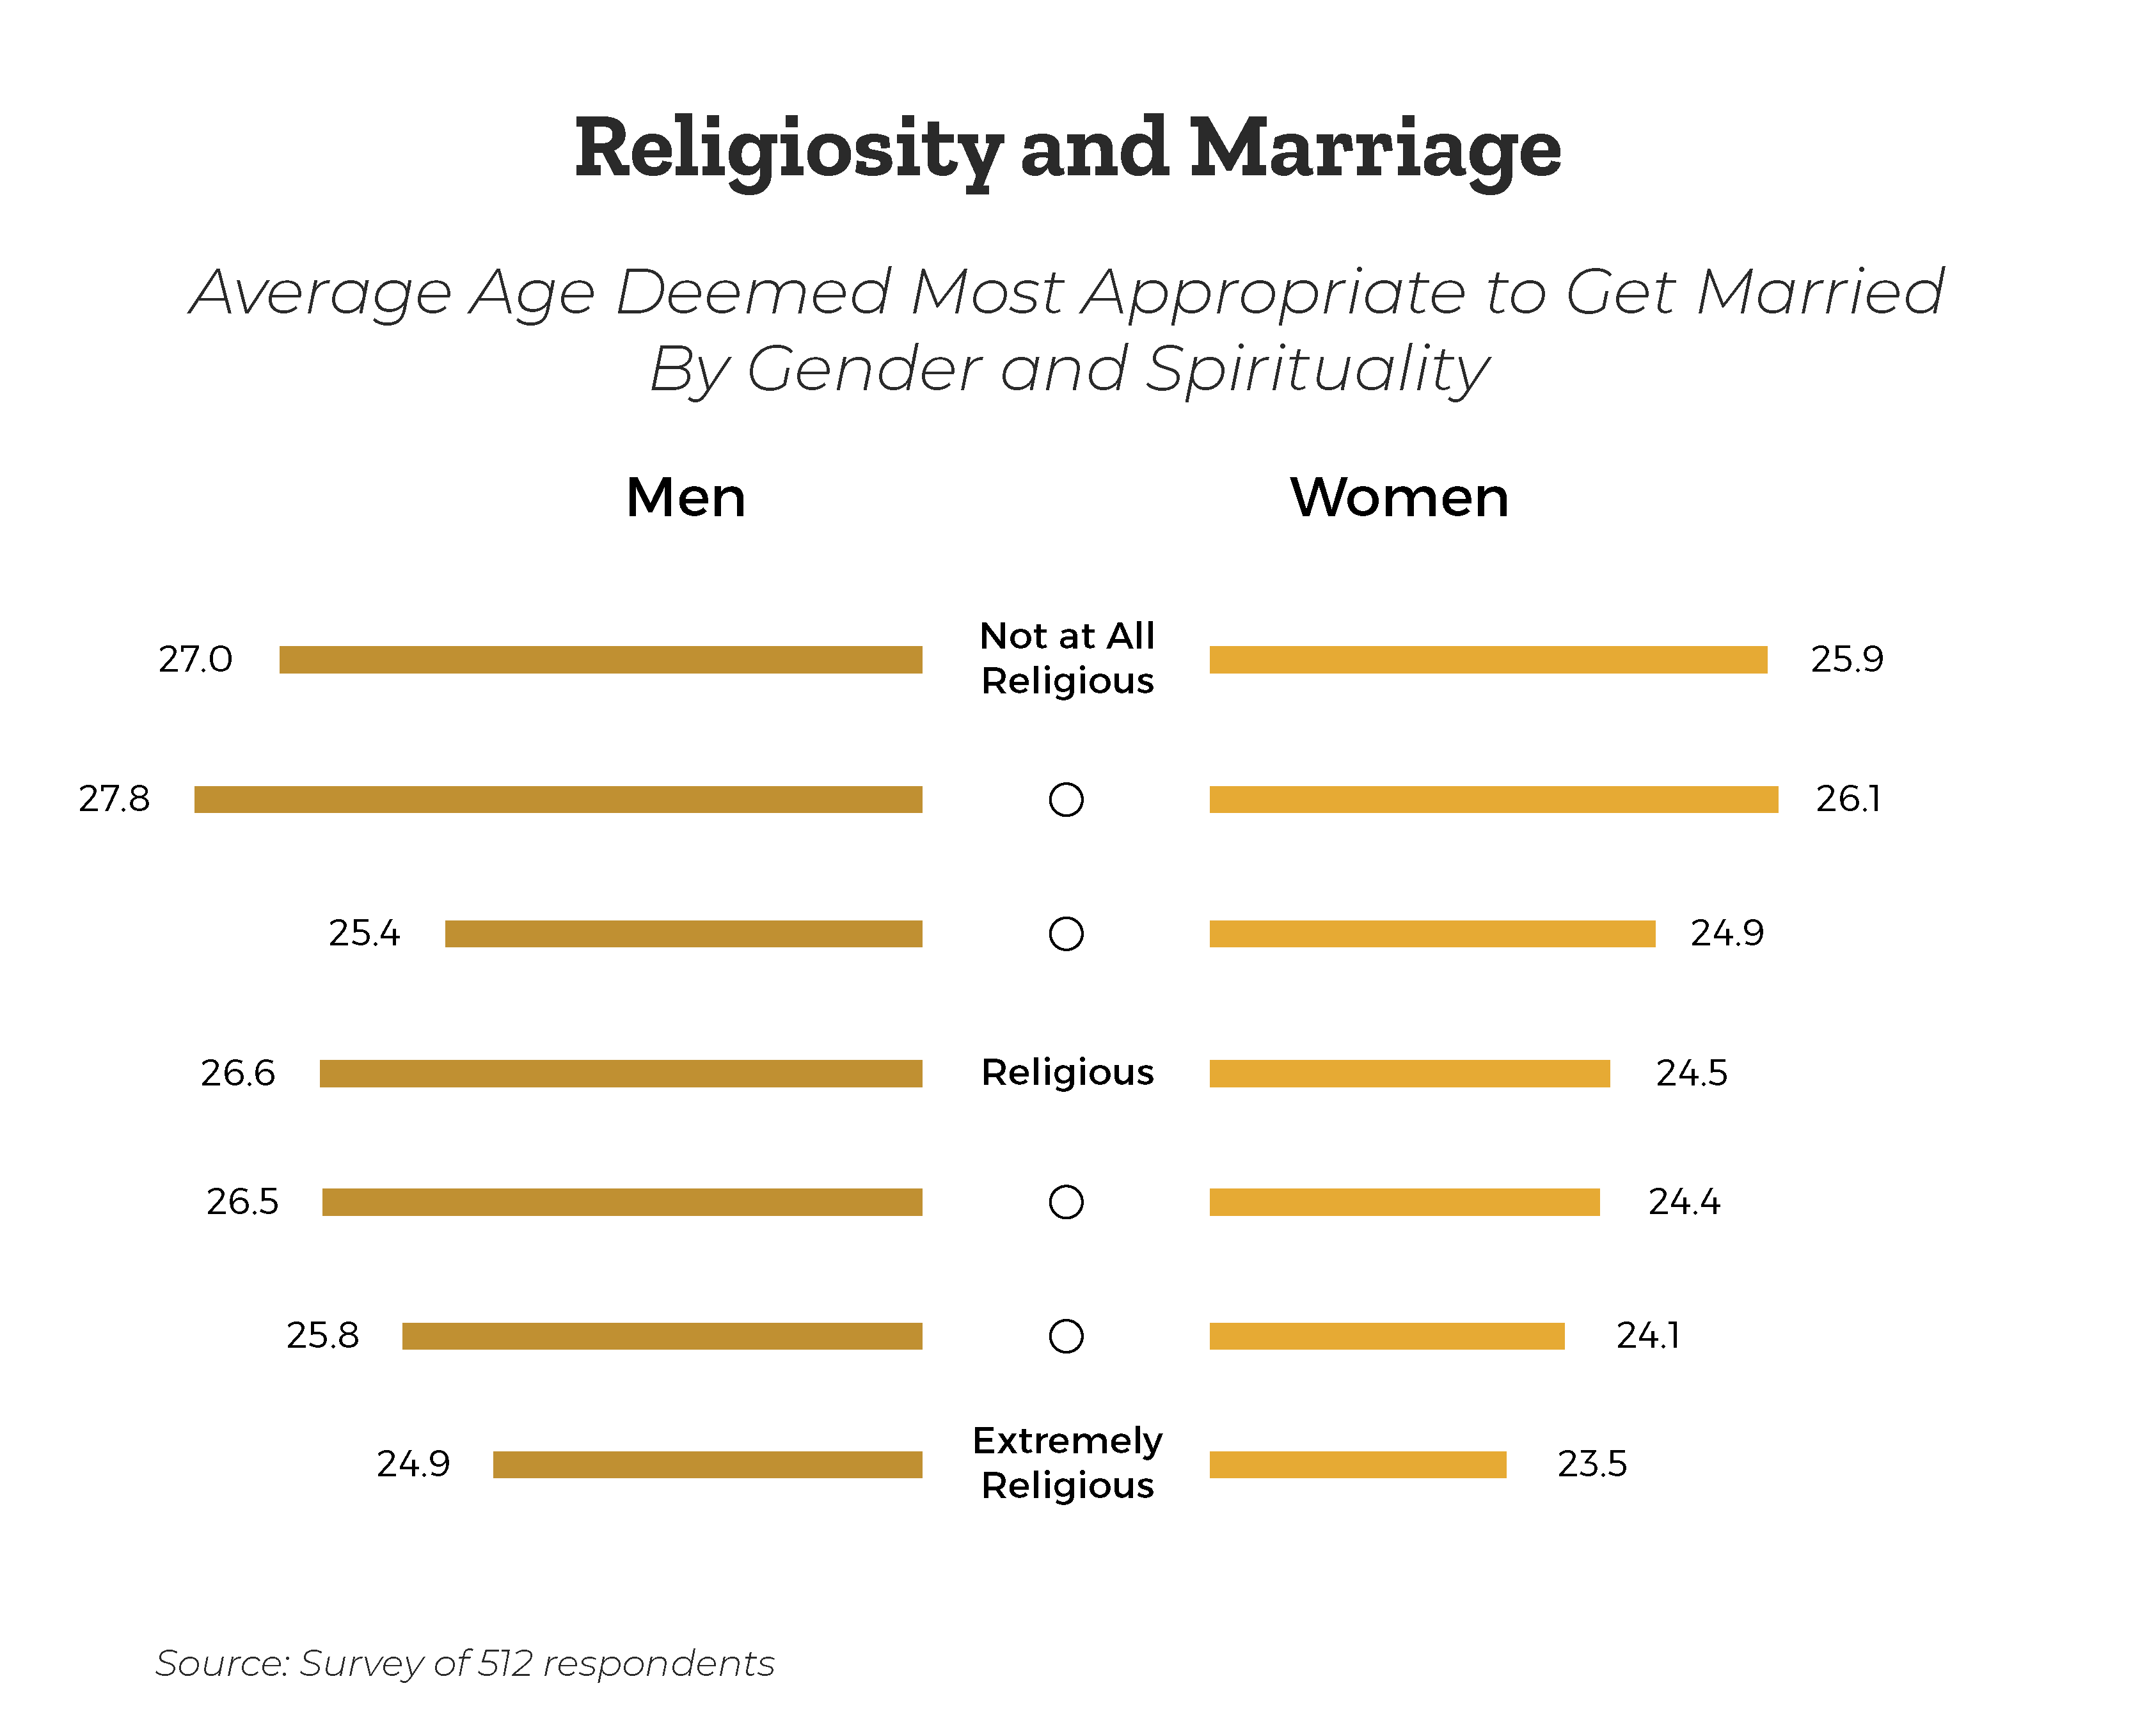 age-most-apporpriate-to-get-married-by-religiosity